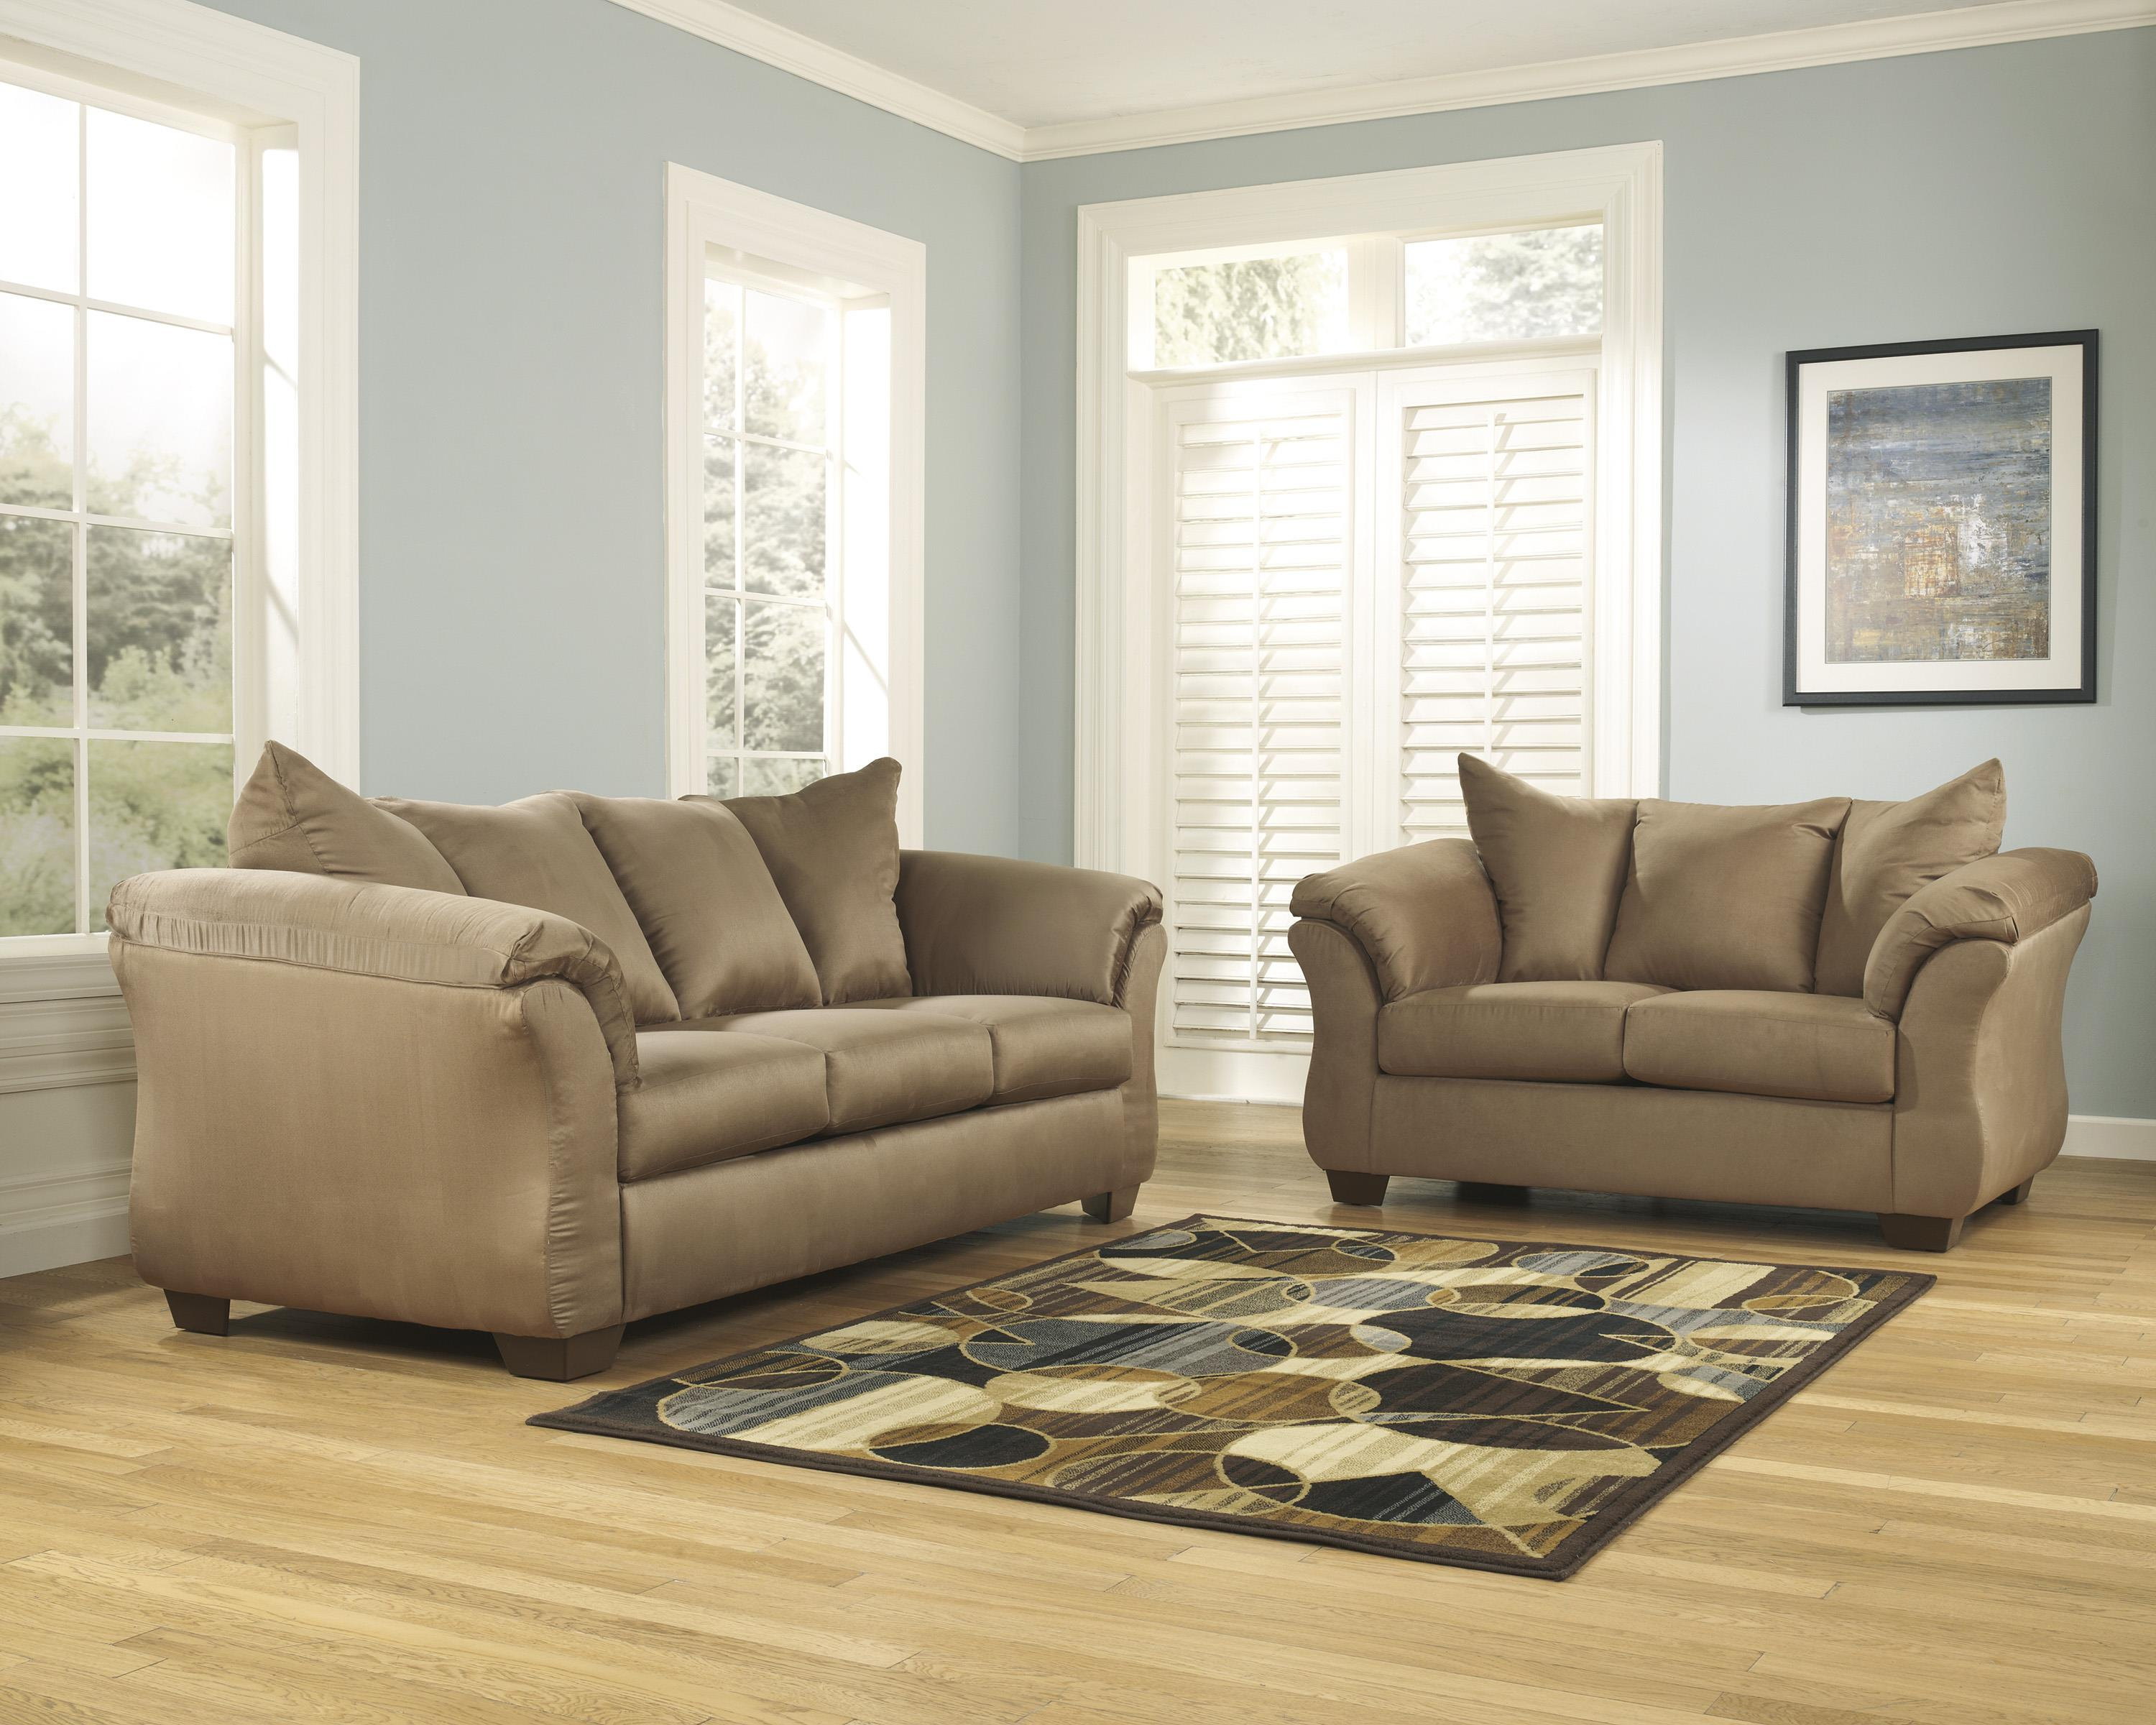 Living Room Furniture Jacksonville Nc remarkable living room furniture jacksonville nc photos - best